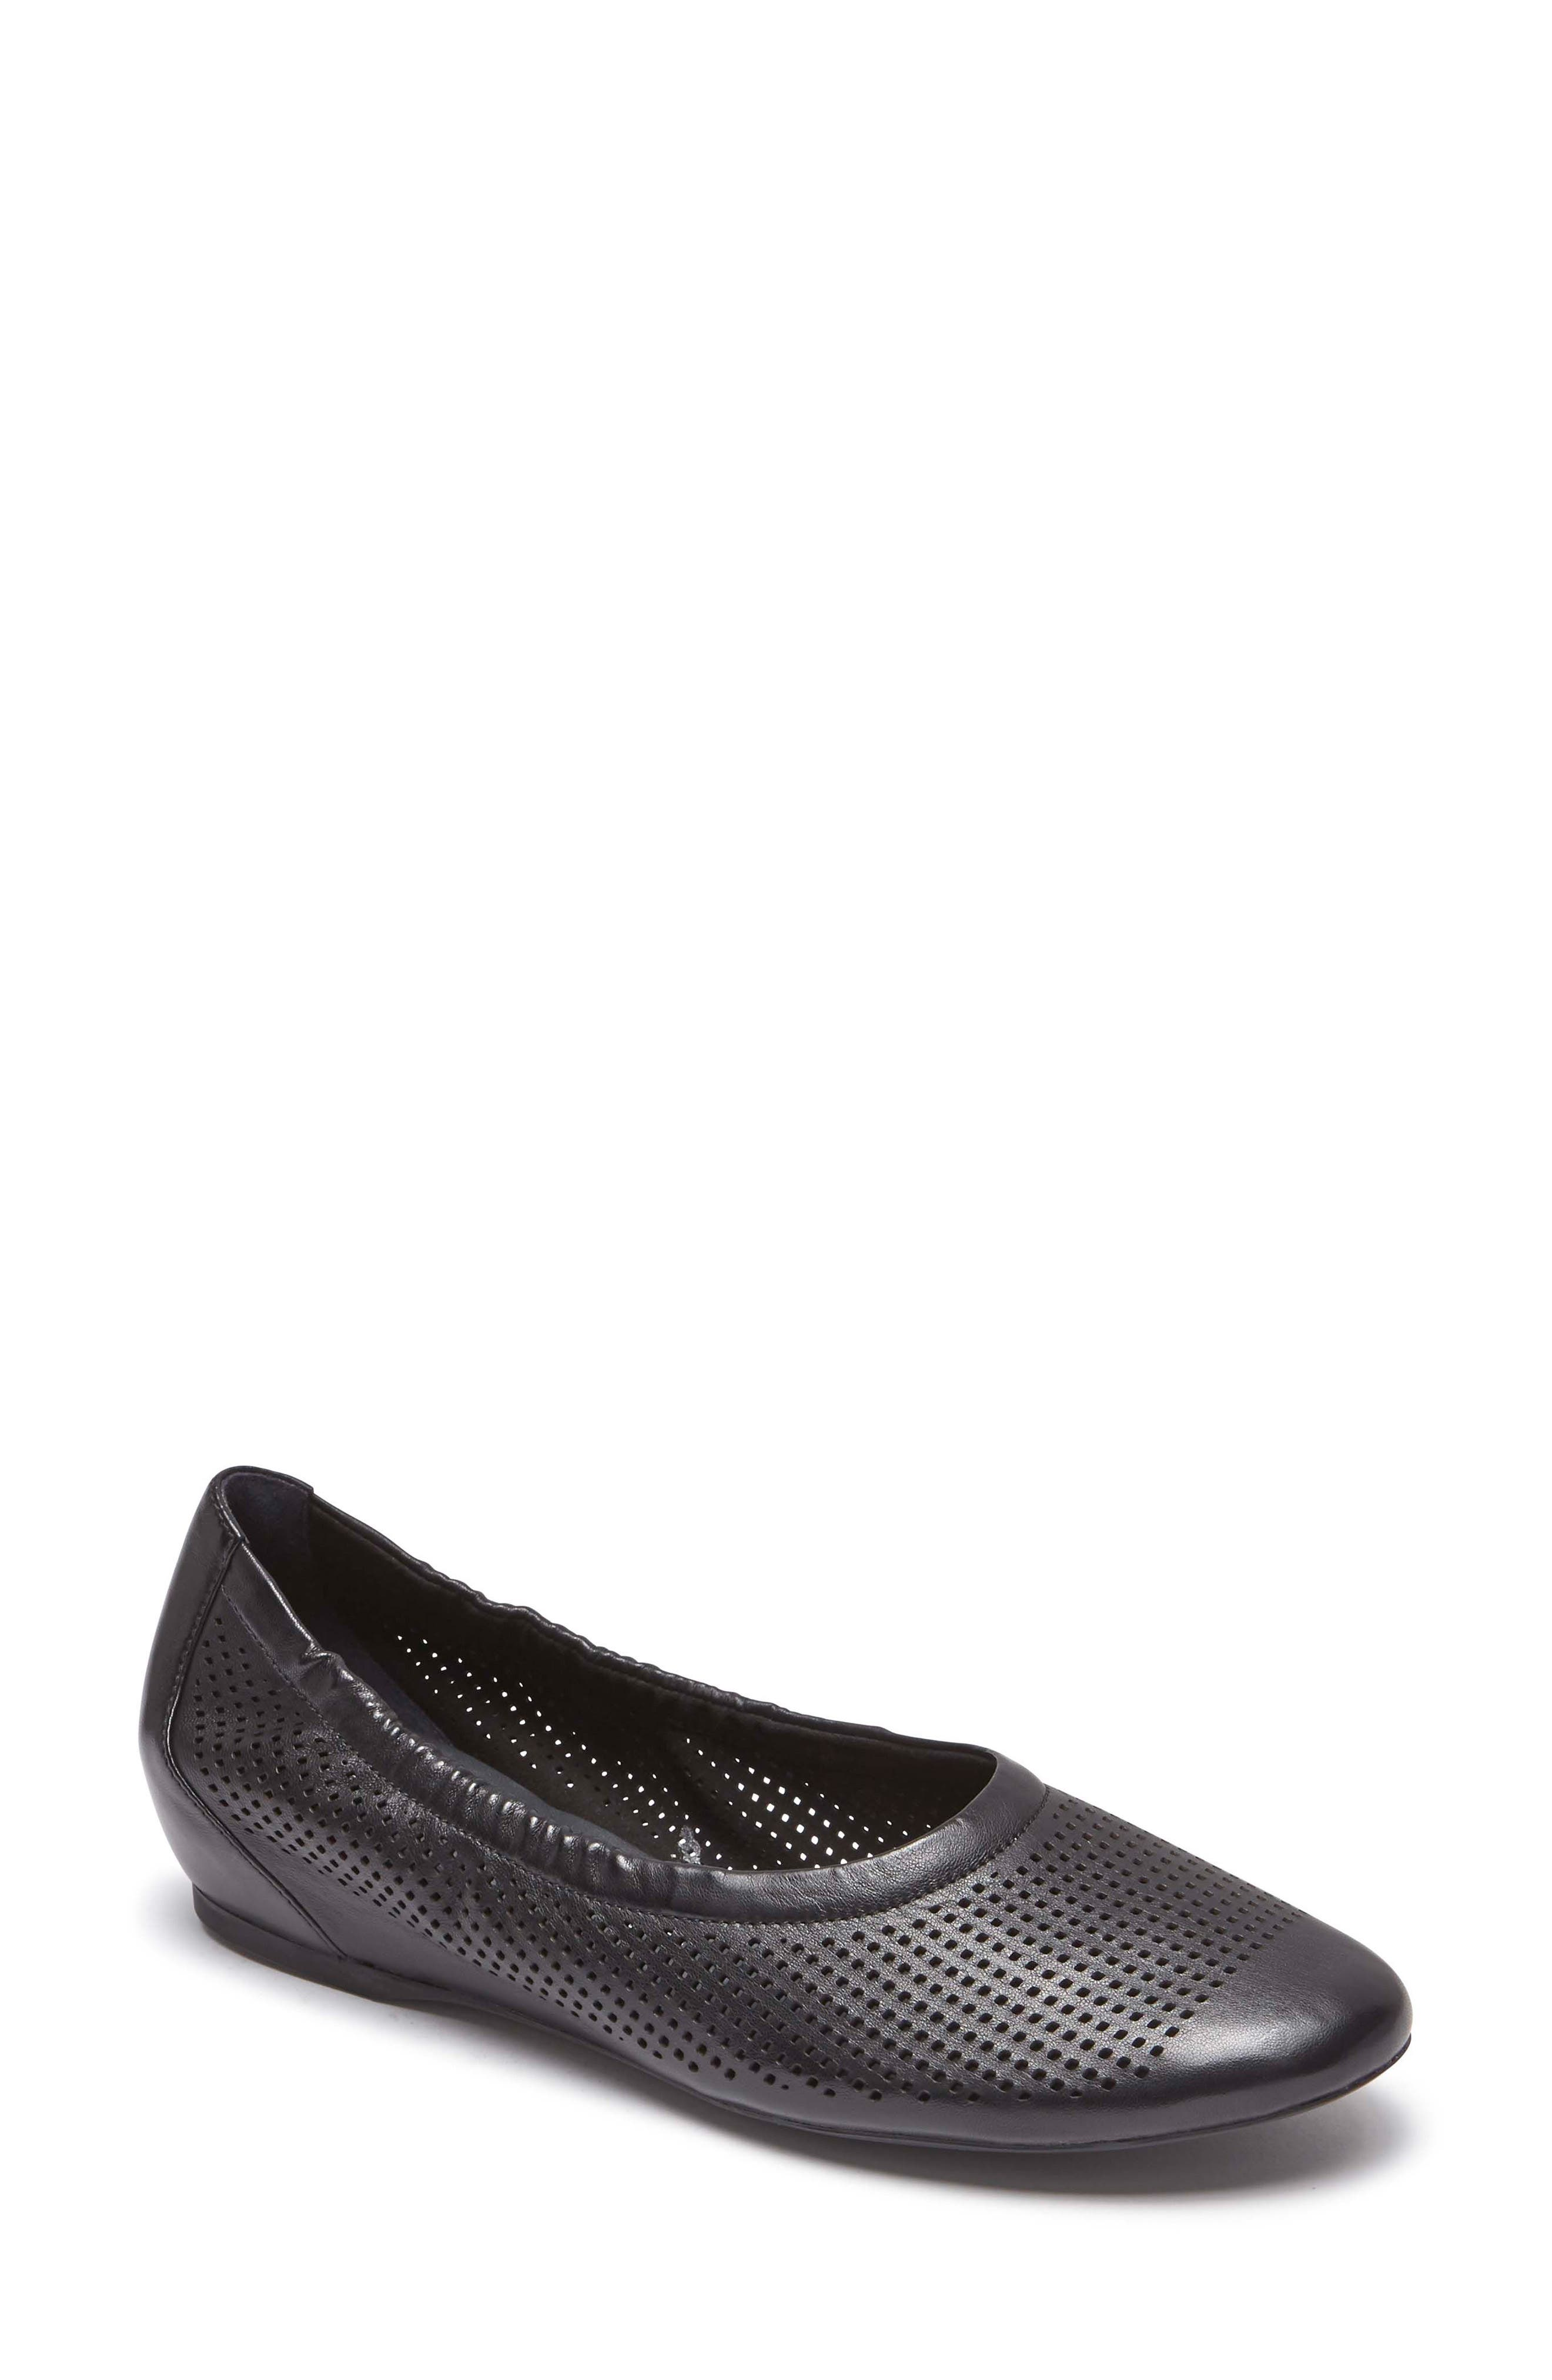 Rockport Total Motion Luxe Flat, Black